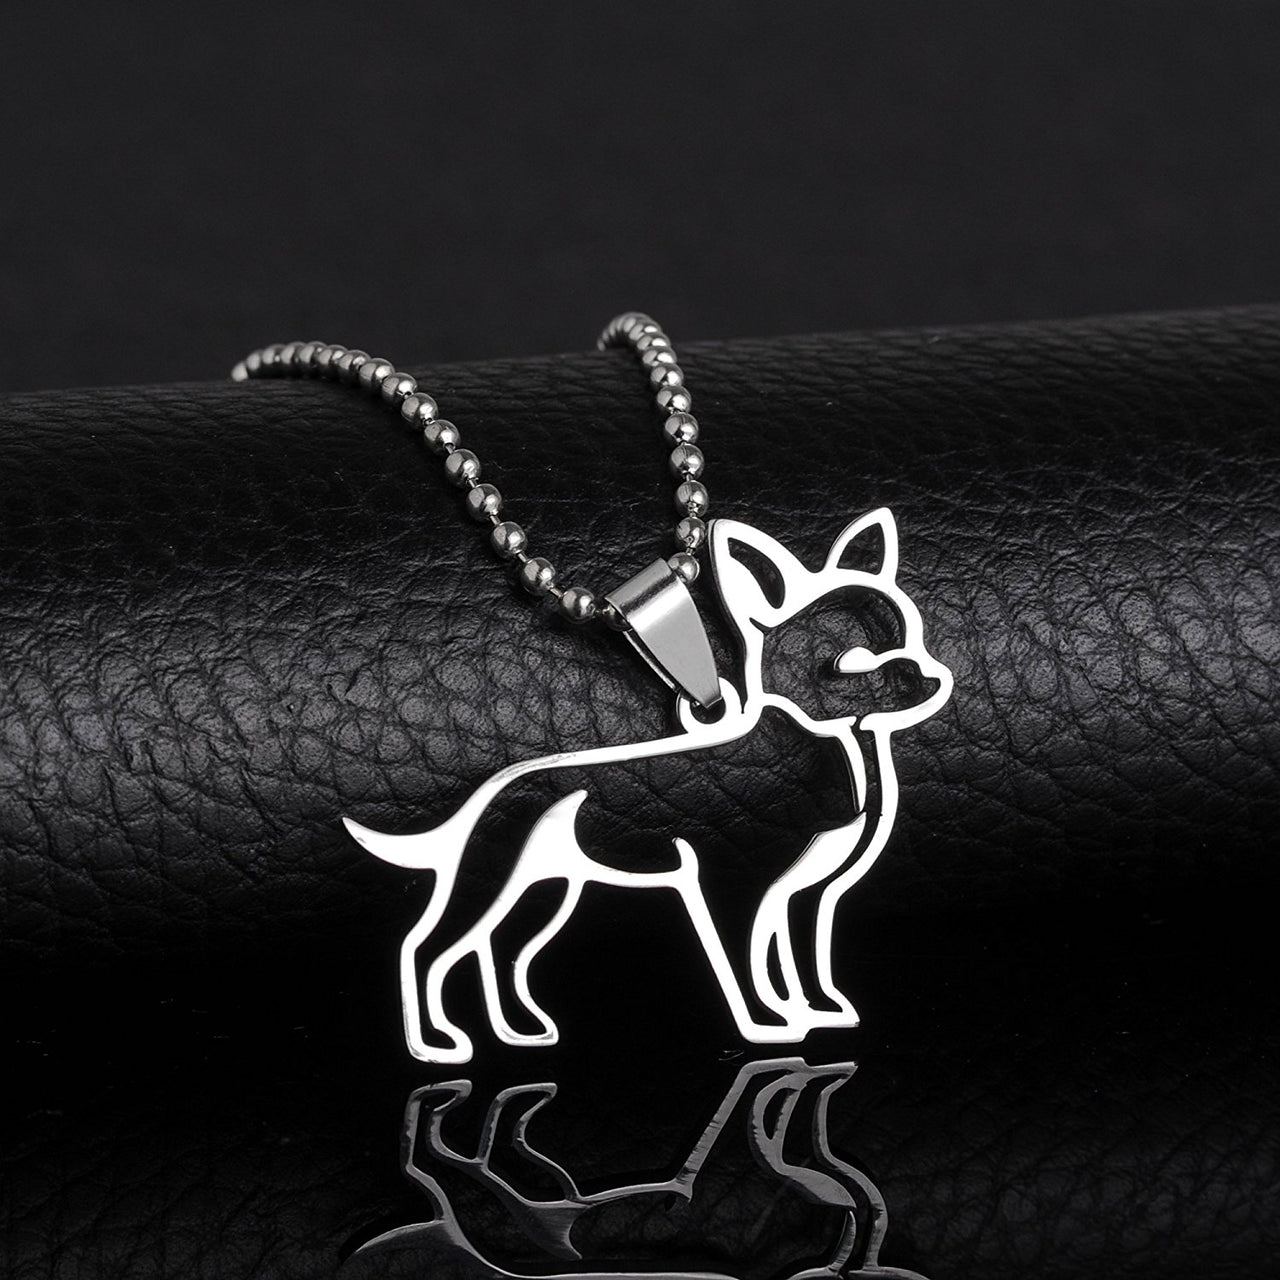 Stainless Steel Chihuahua Outline Dog Pet Dog Tag Breed Collar Charm Pendant Necklace